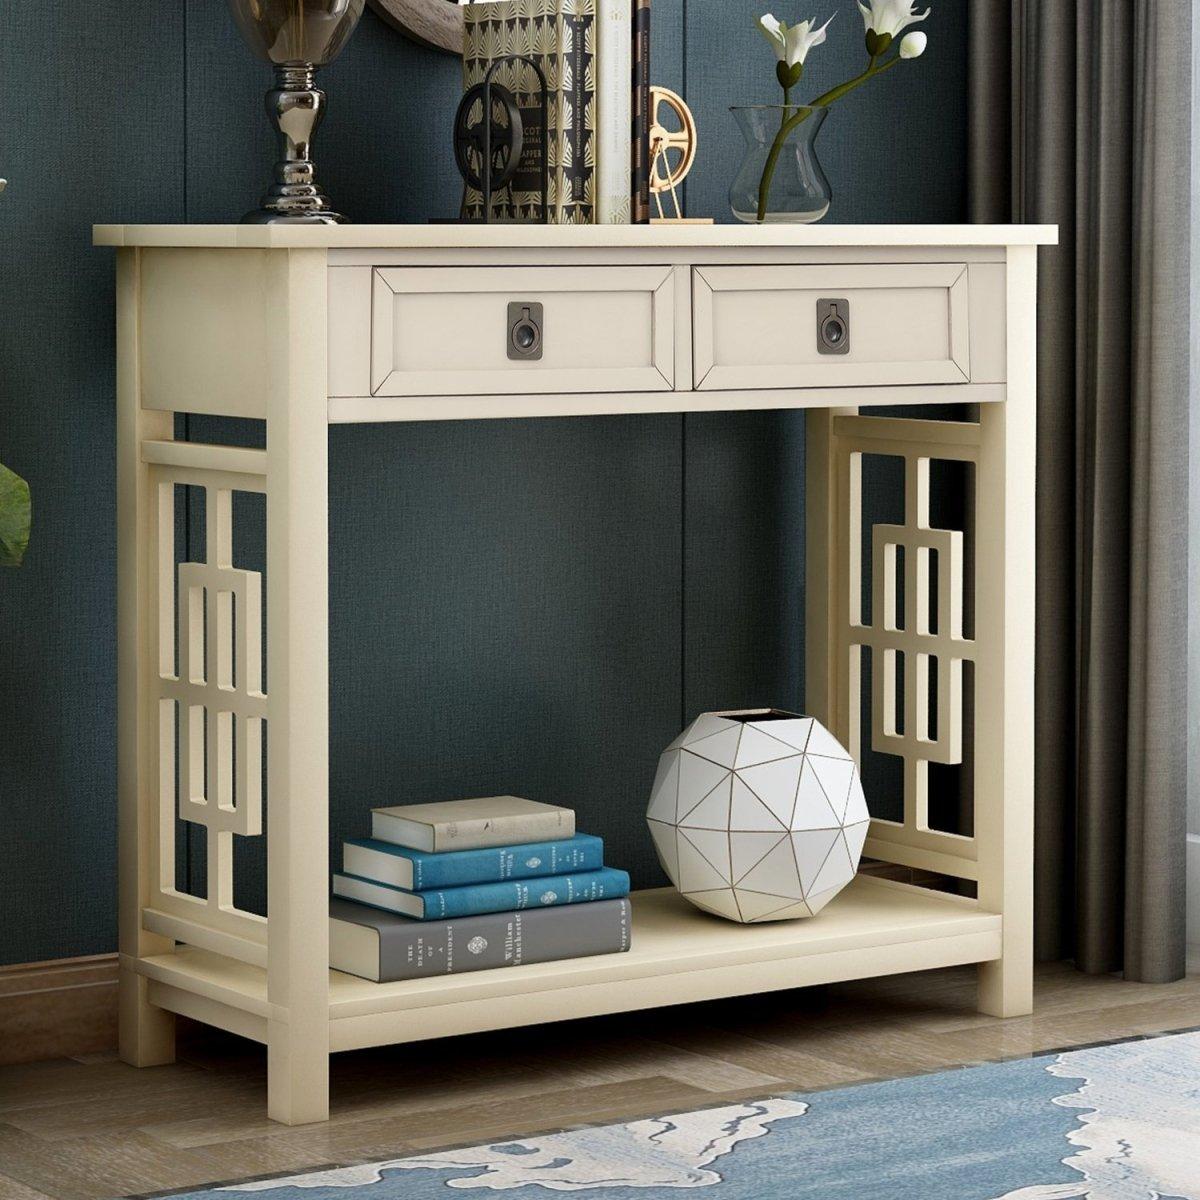 Lawson Console Table.